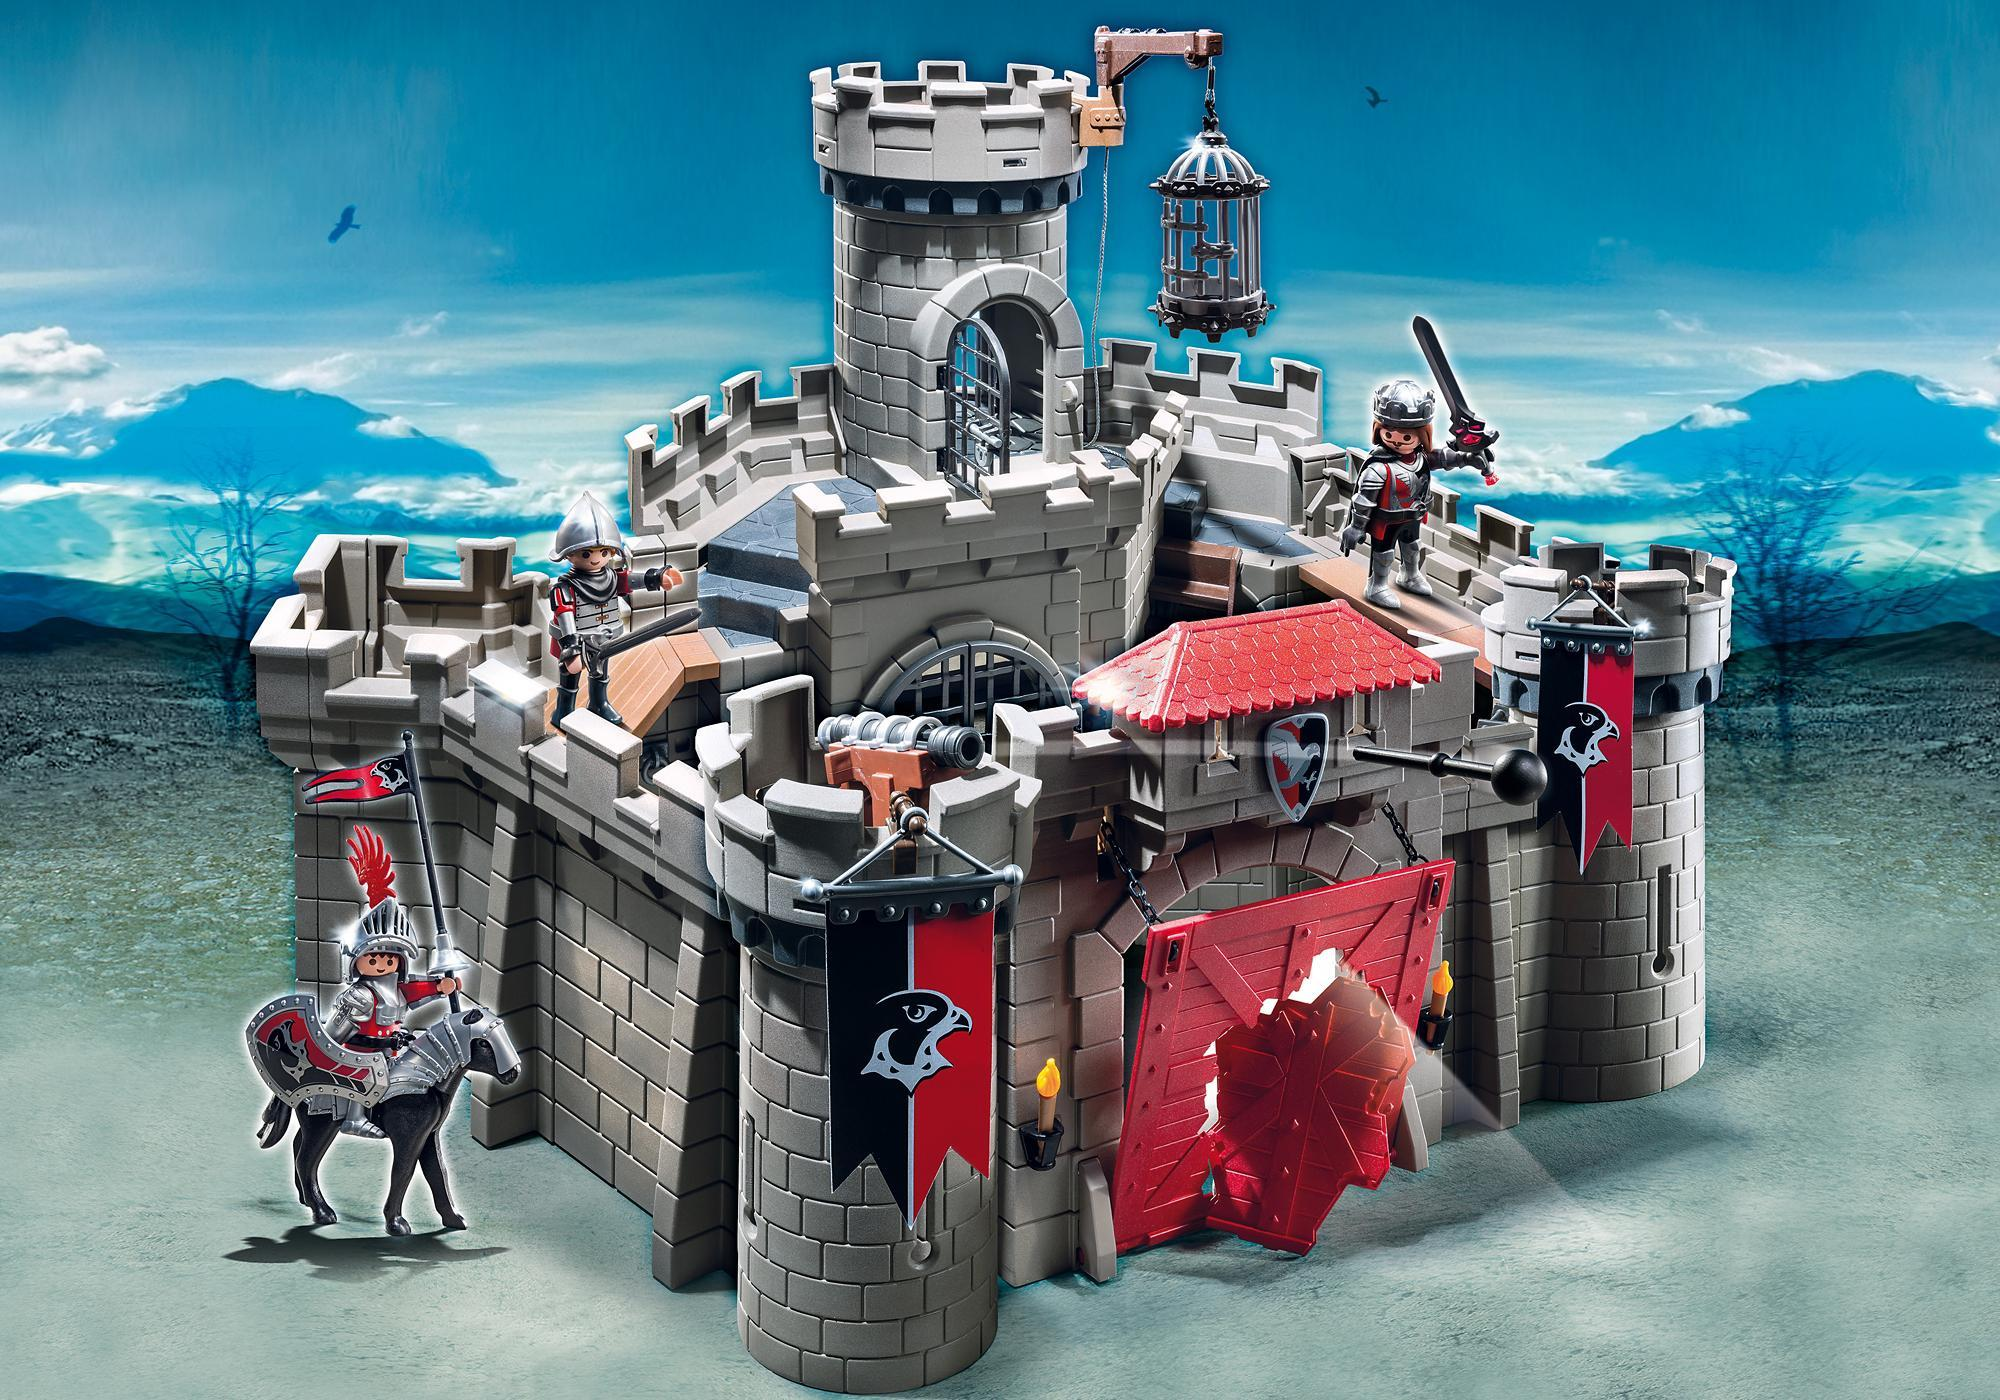 http://media.playmobil.com/i/playmobil/6001_product_detail/Hawk Knights` Castle